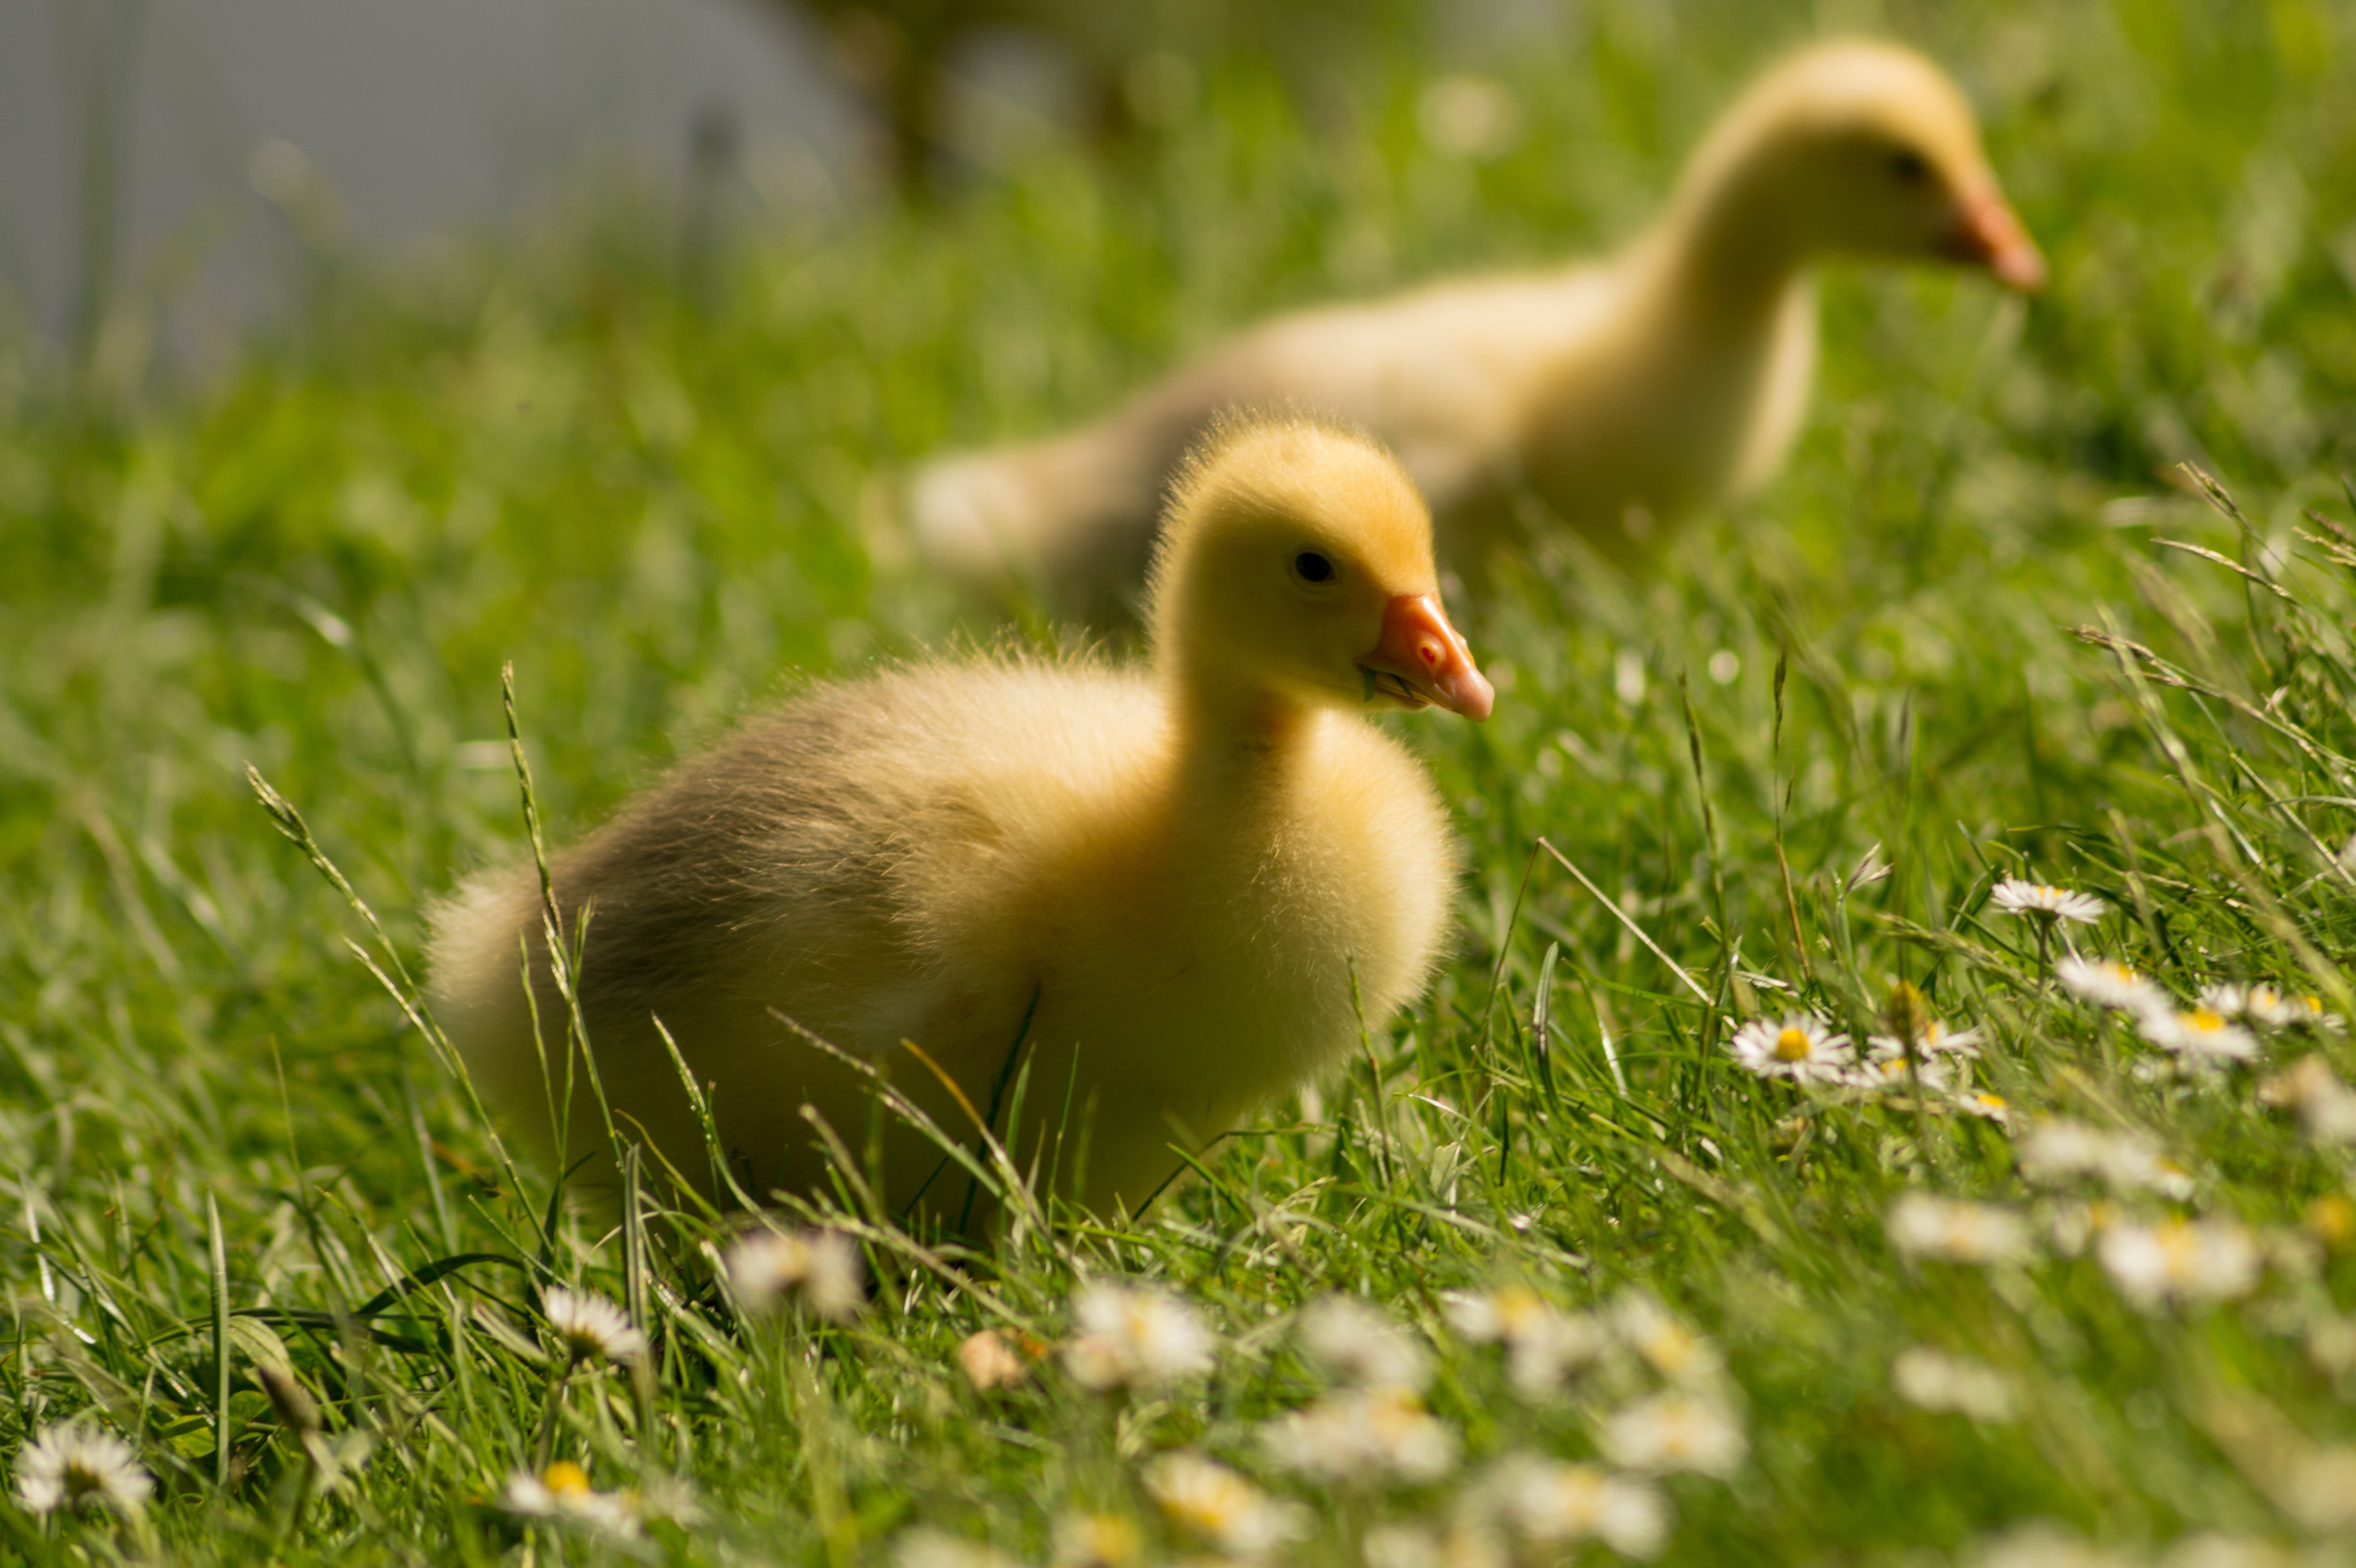 Selective Focus Photography of Yellow Ducklings Standing on Green Grass Field